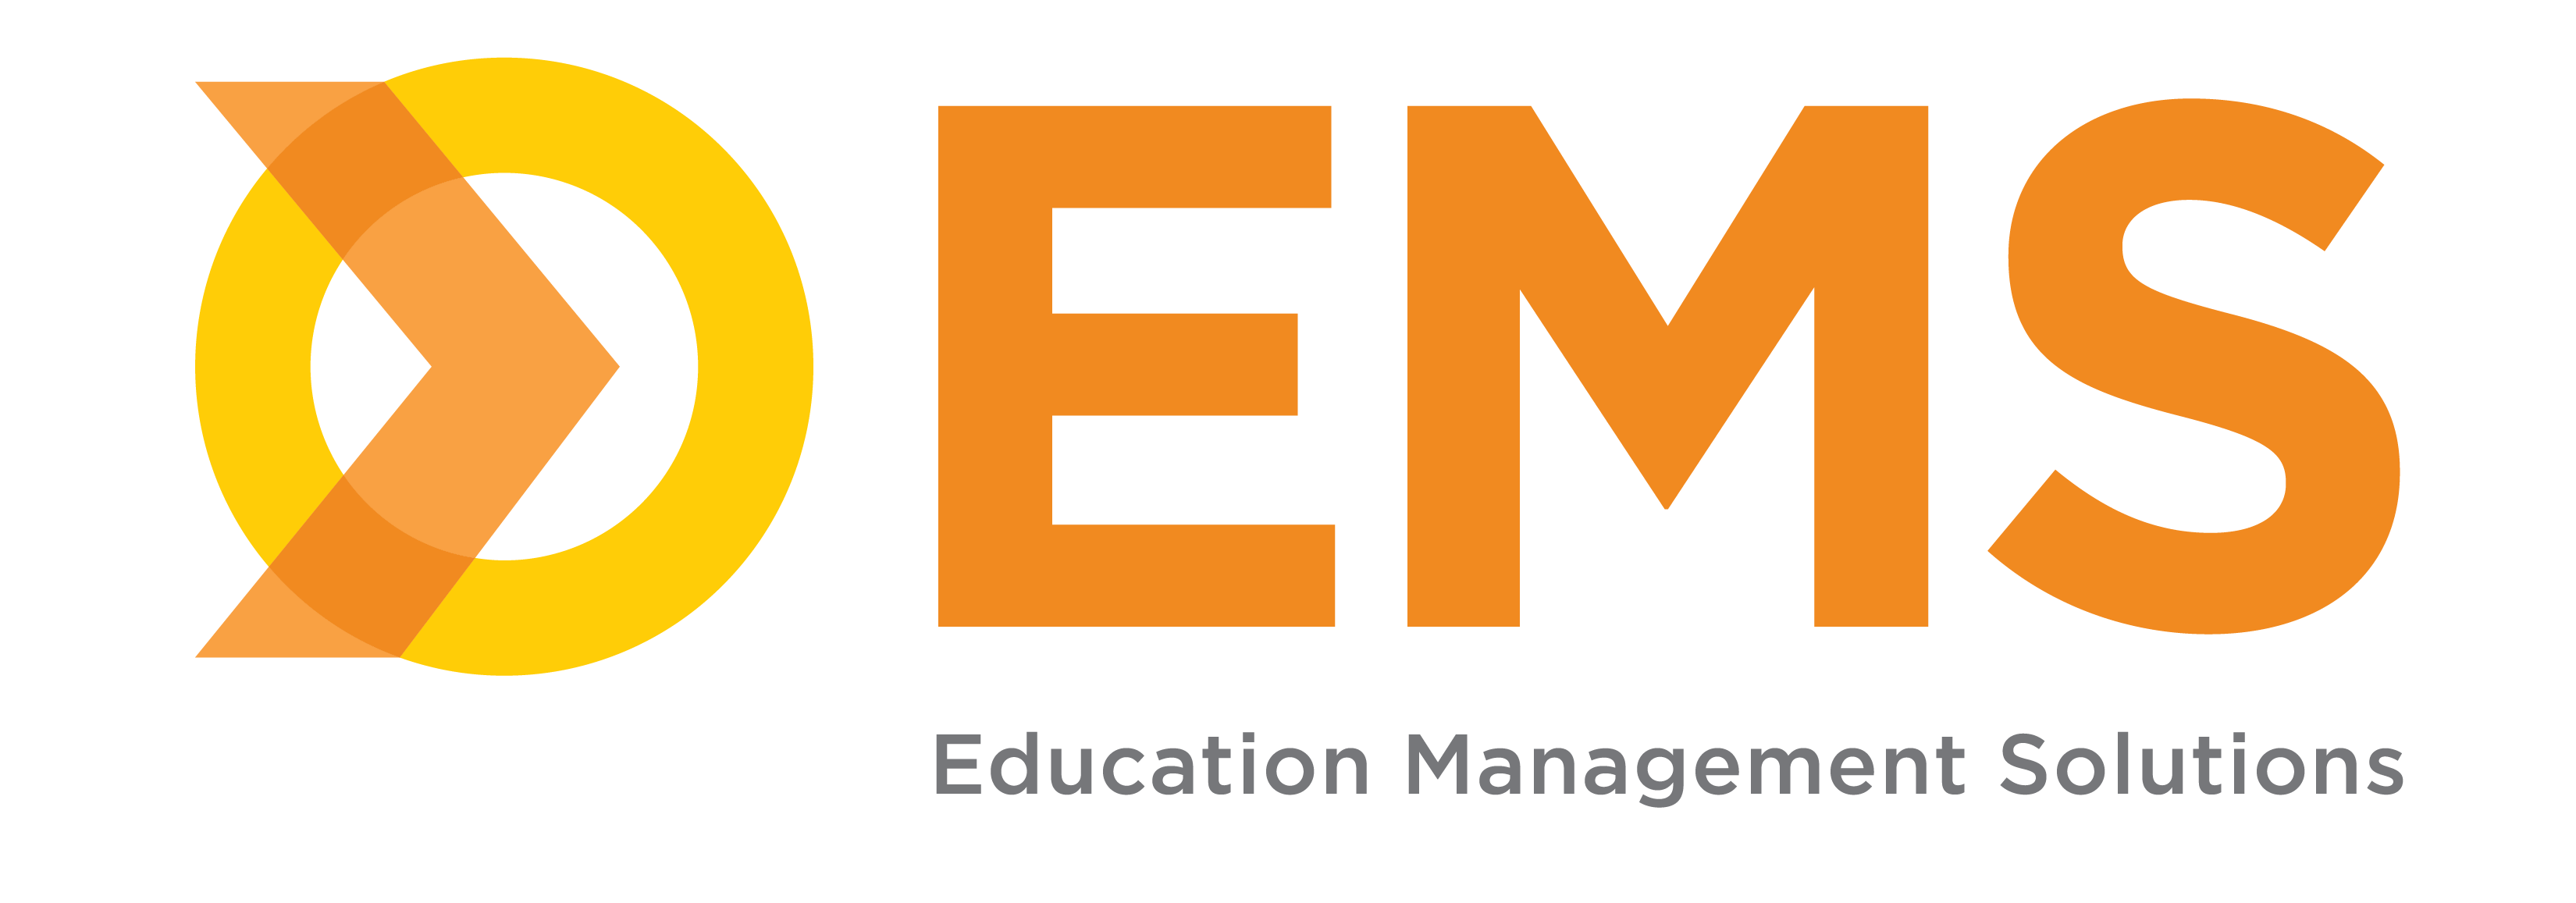 Education Management Solutions (EMS)